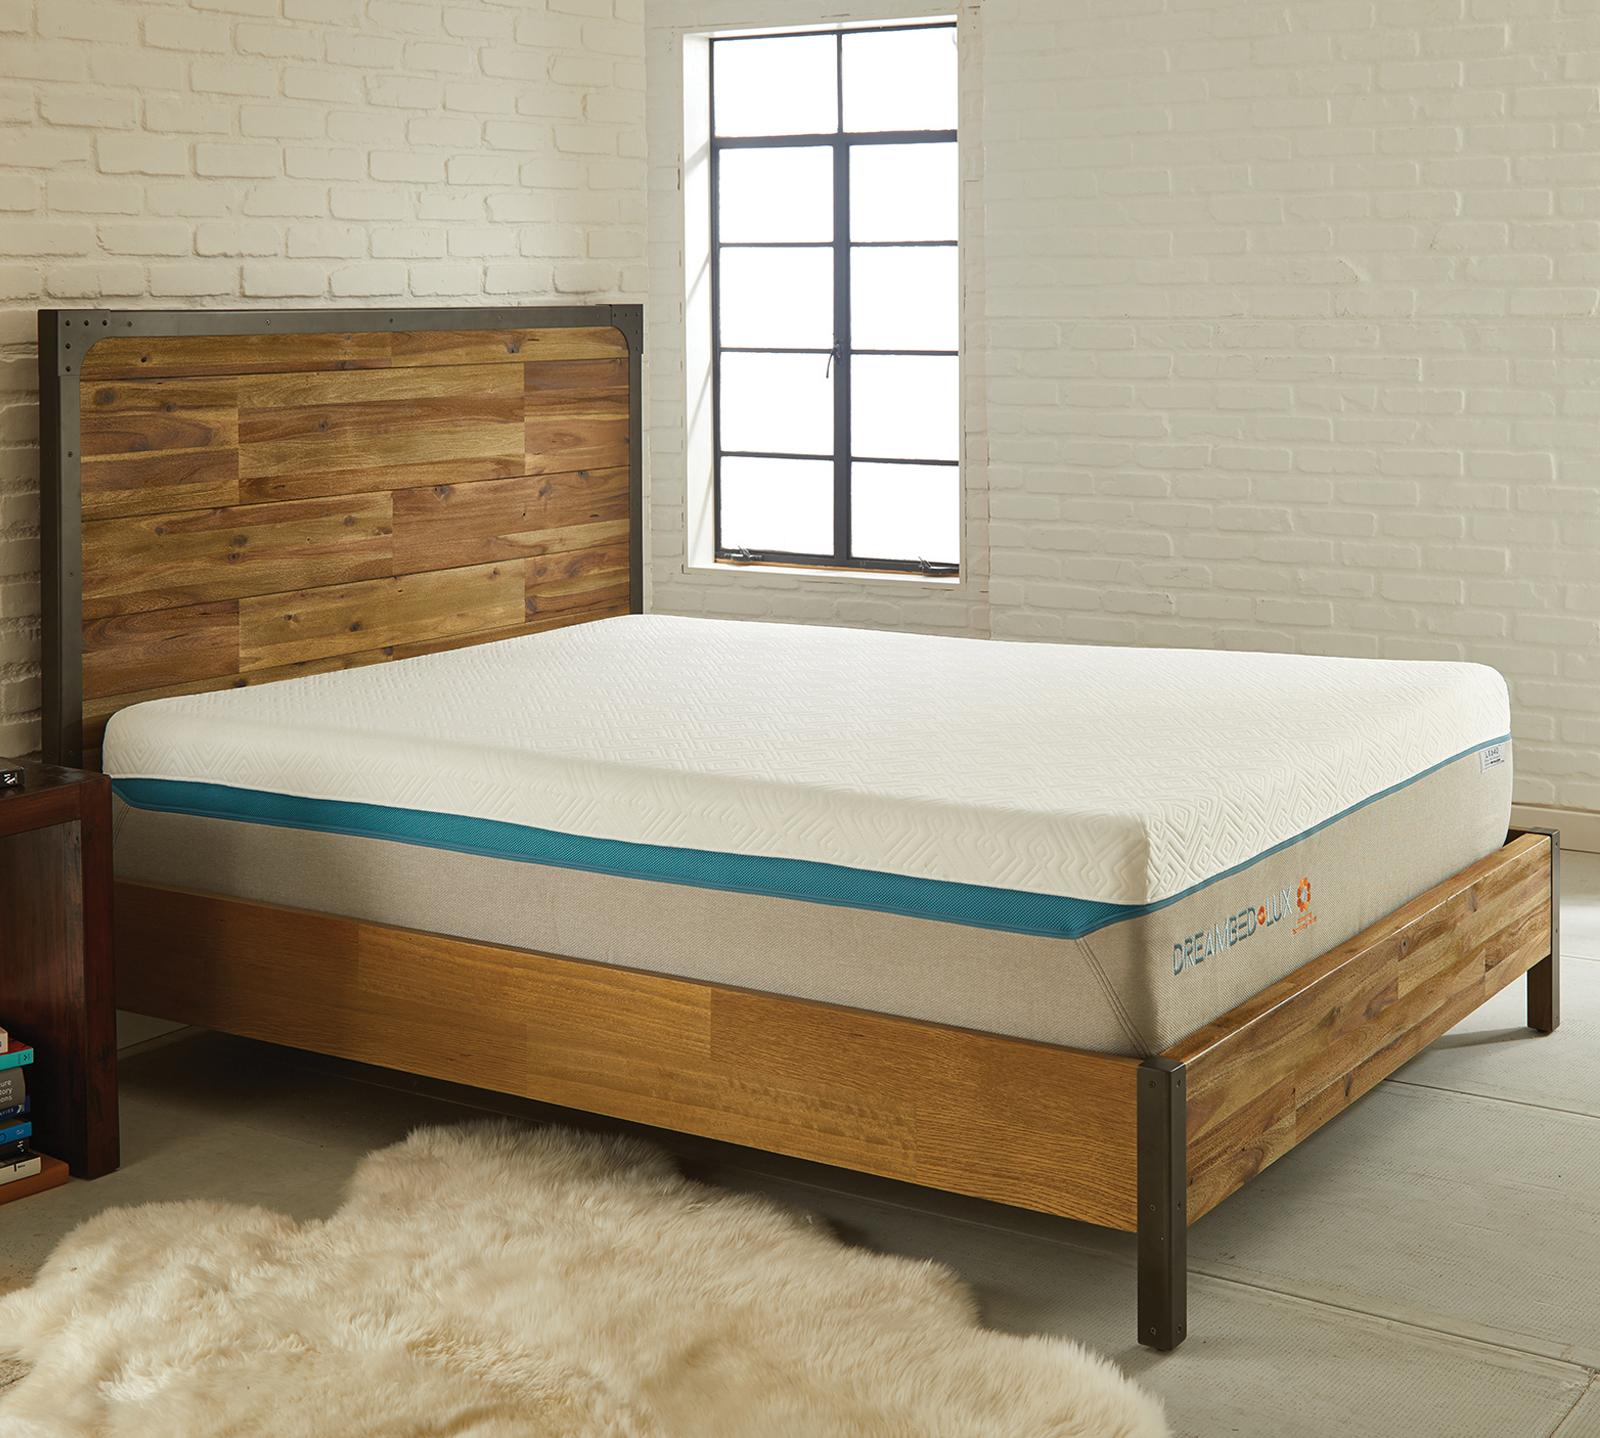 Beds Memory Foam Mattress Lx510 12